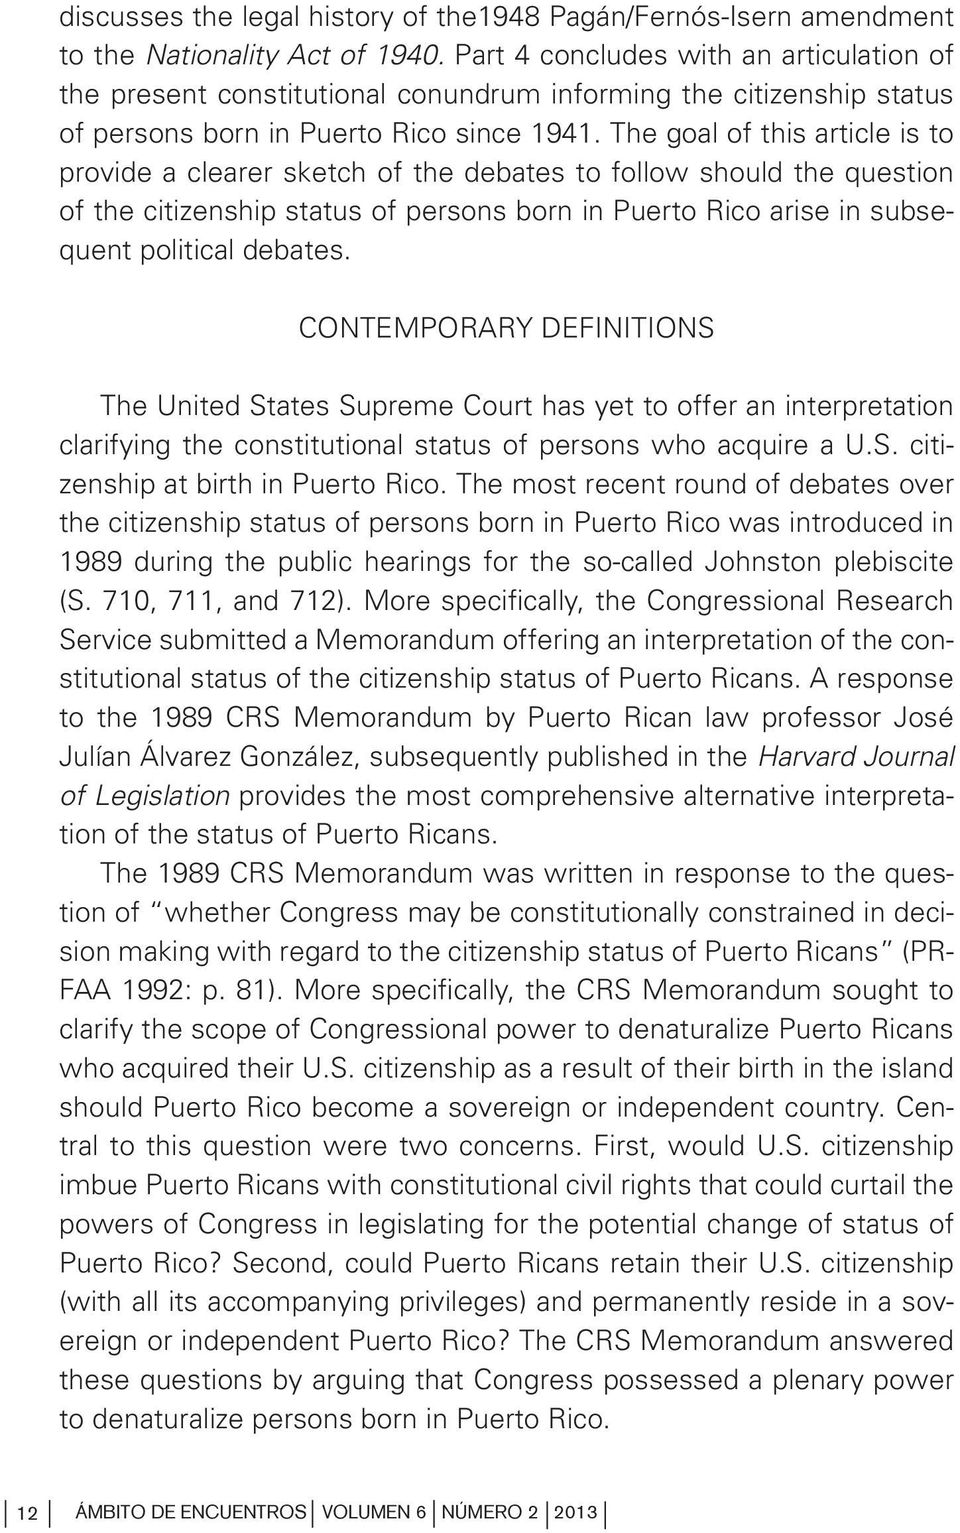 The goal of this article is to provide a clearer sketch of the debates to follow should the question of the citizenship status of persons born in Puerto Rico arise in subsequent political debates.